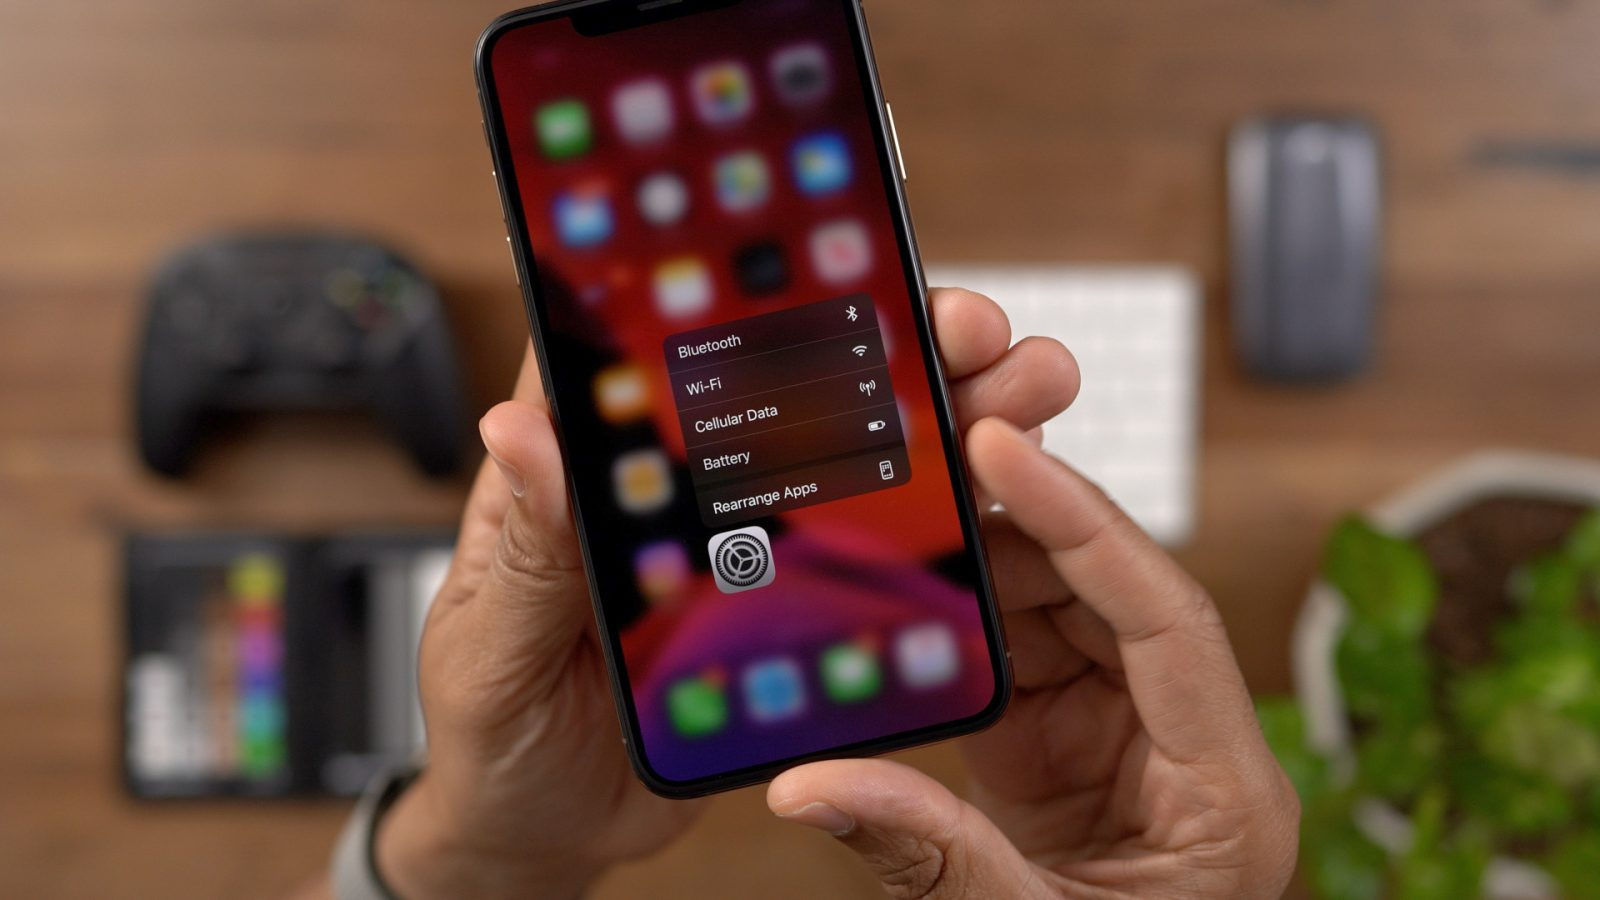 iOS 13 beta 4 changes and features ? 3D Touch improves [Video]